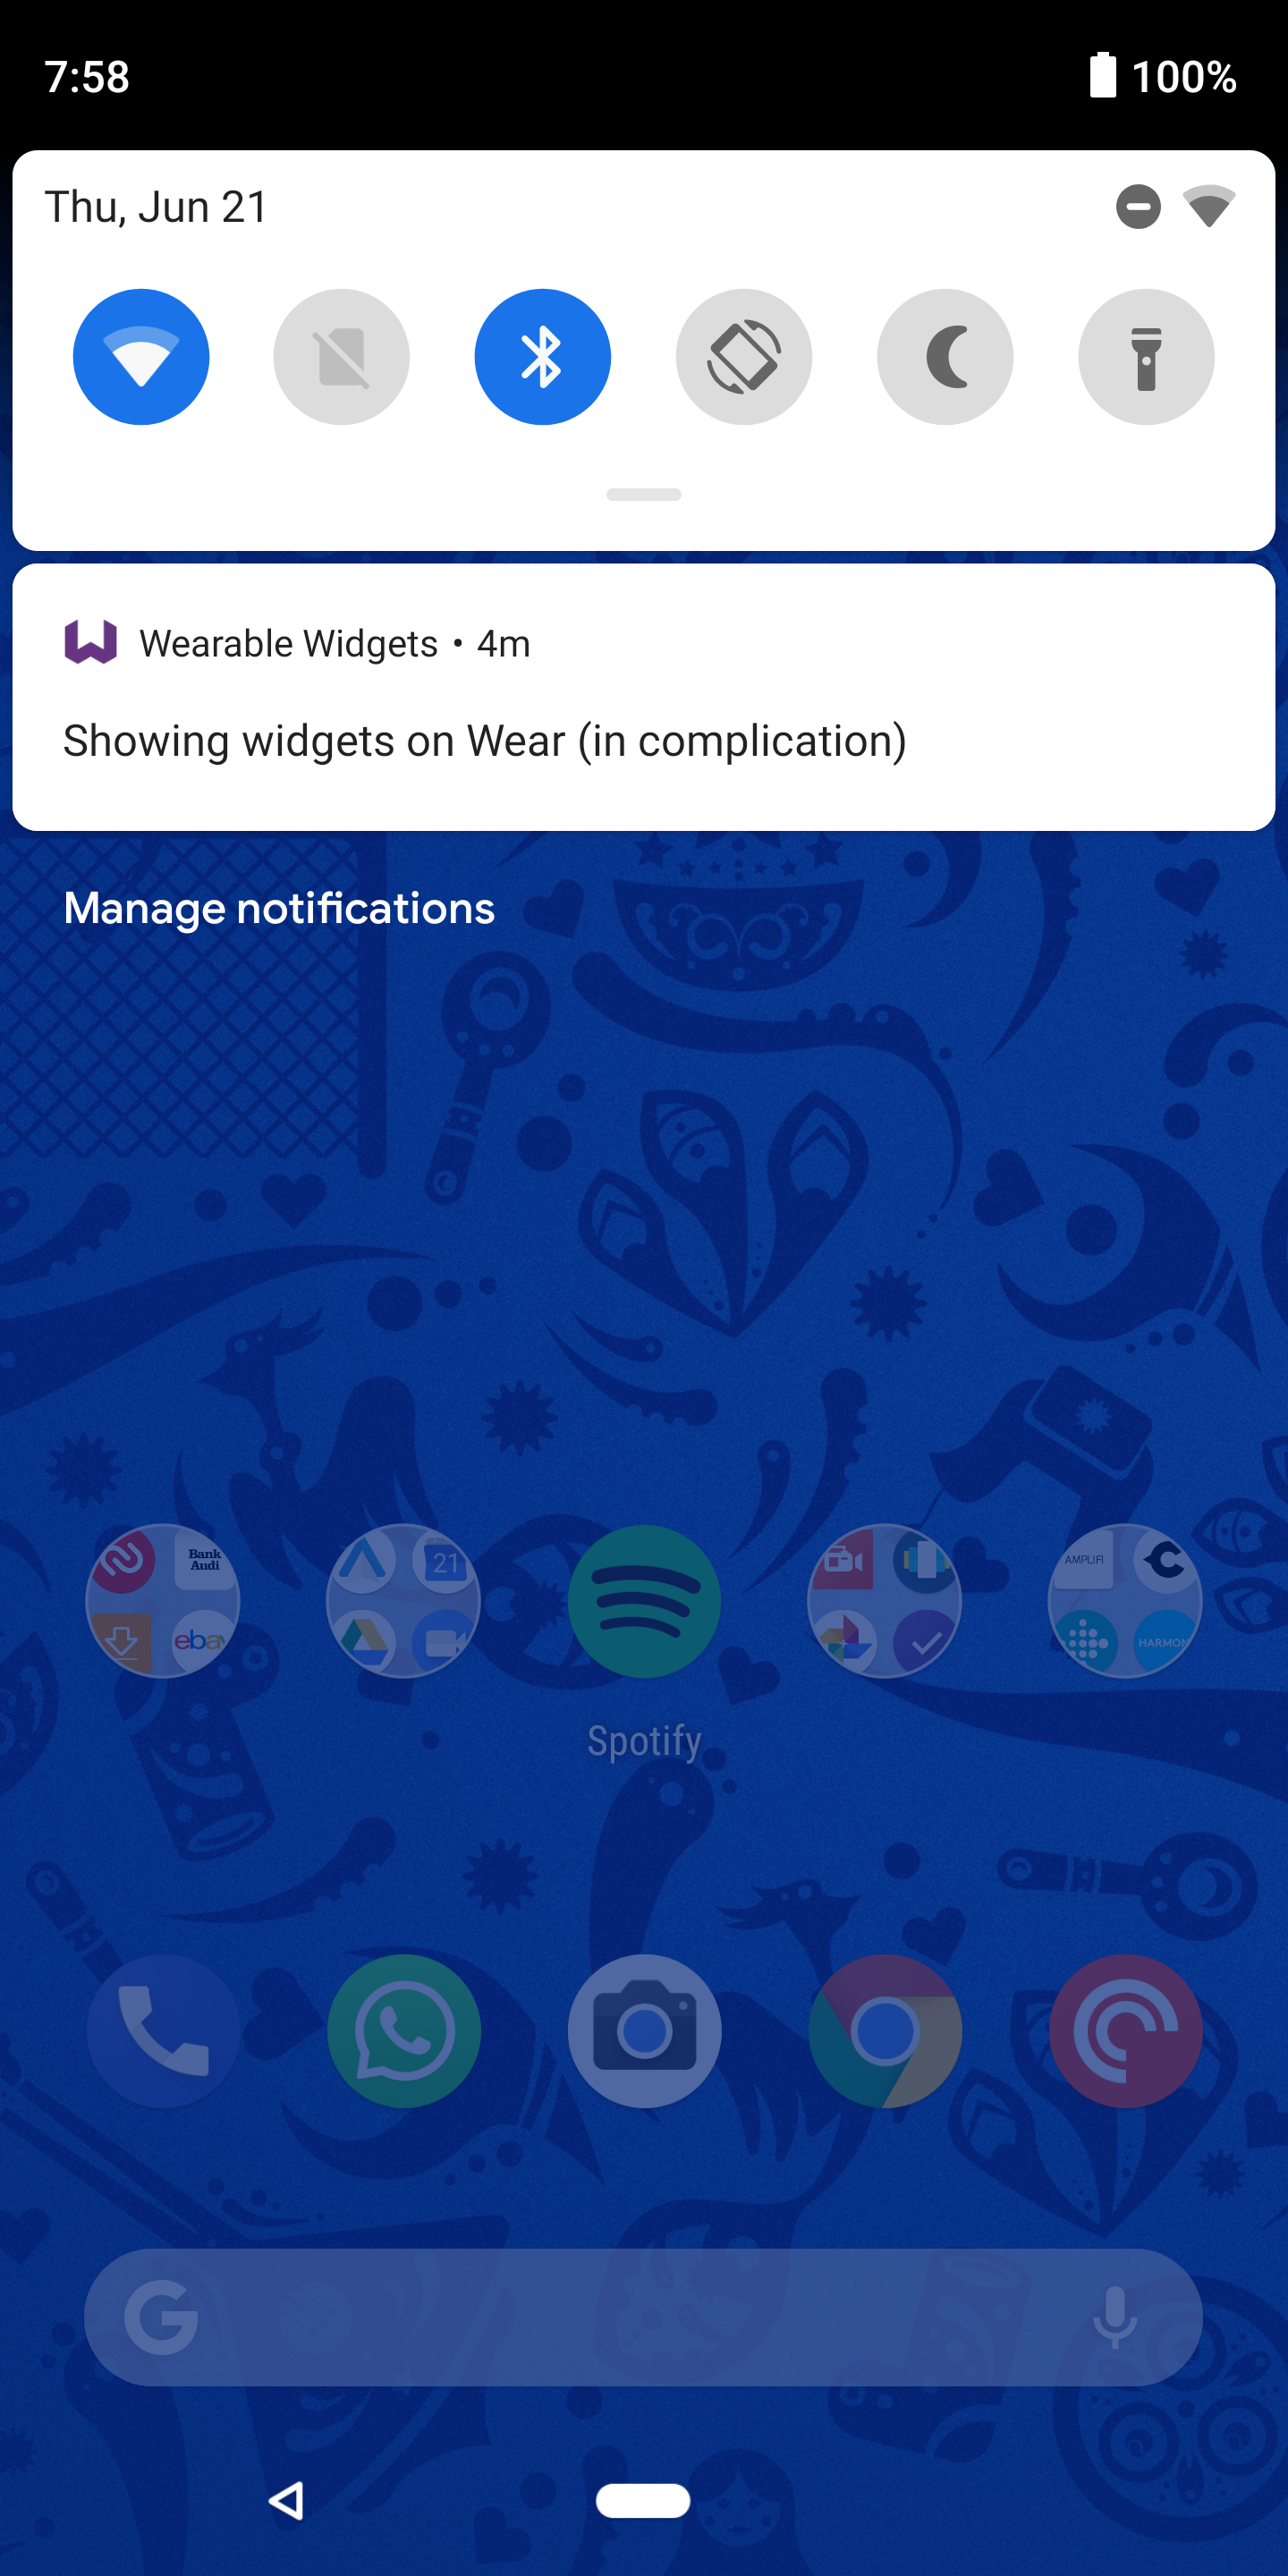 Wearable Widgets turns your phone's app widgets into Wear OS